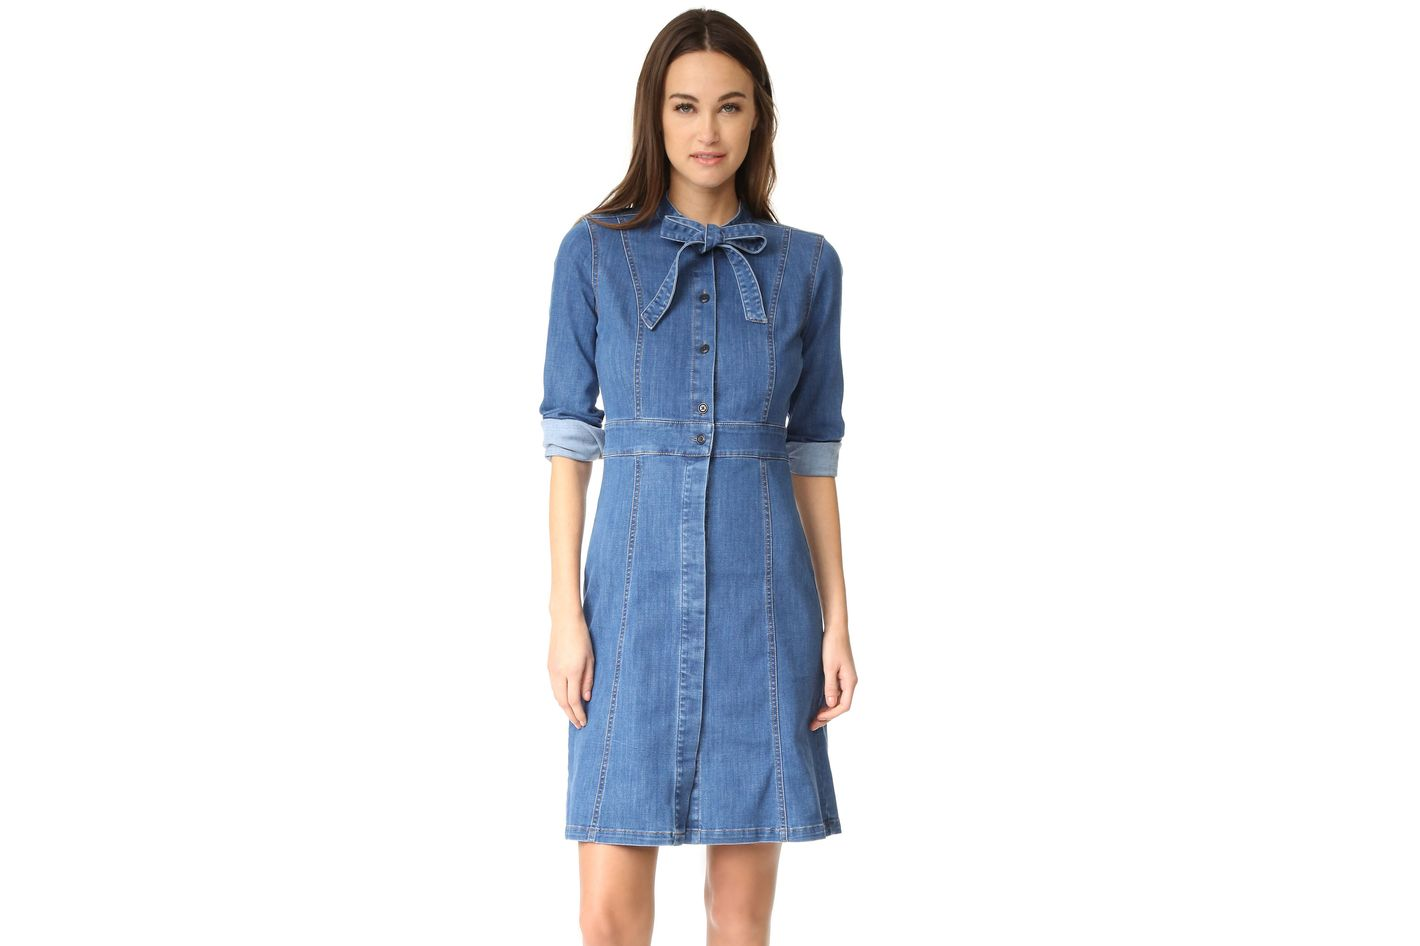 Madewell Denim Tie Neck Dress